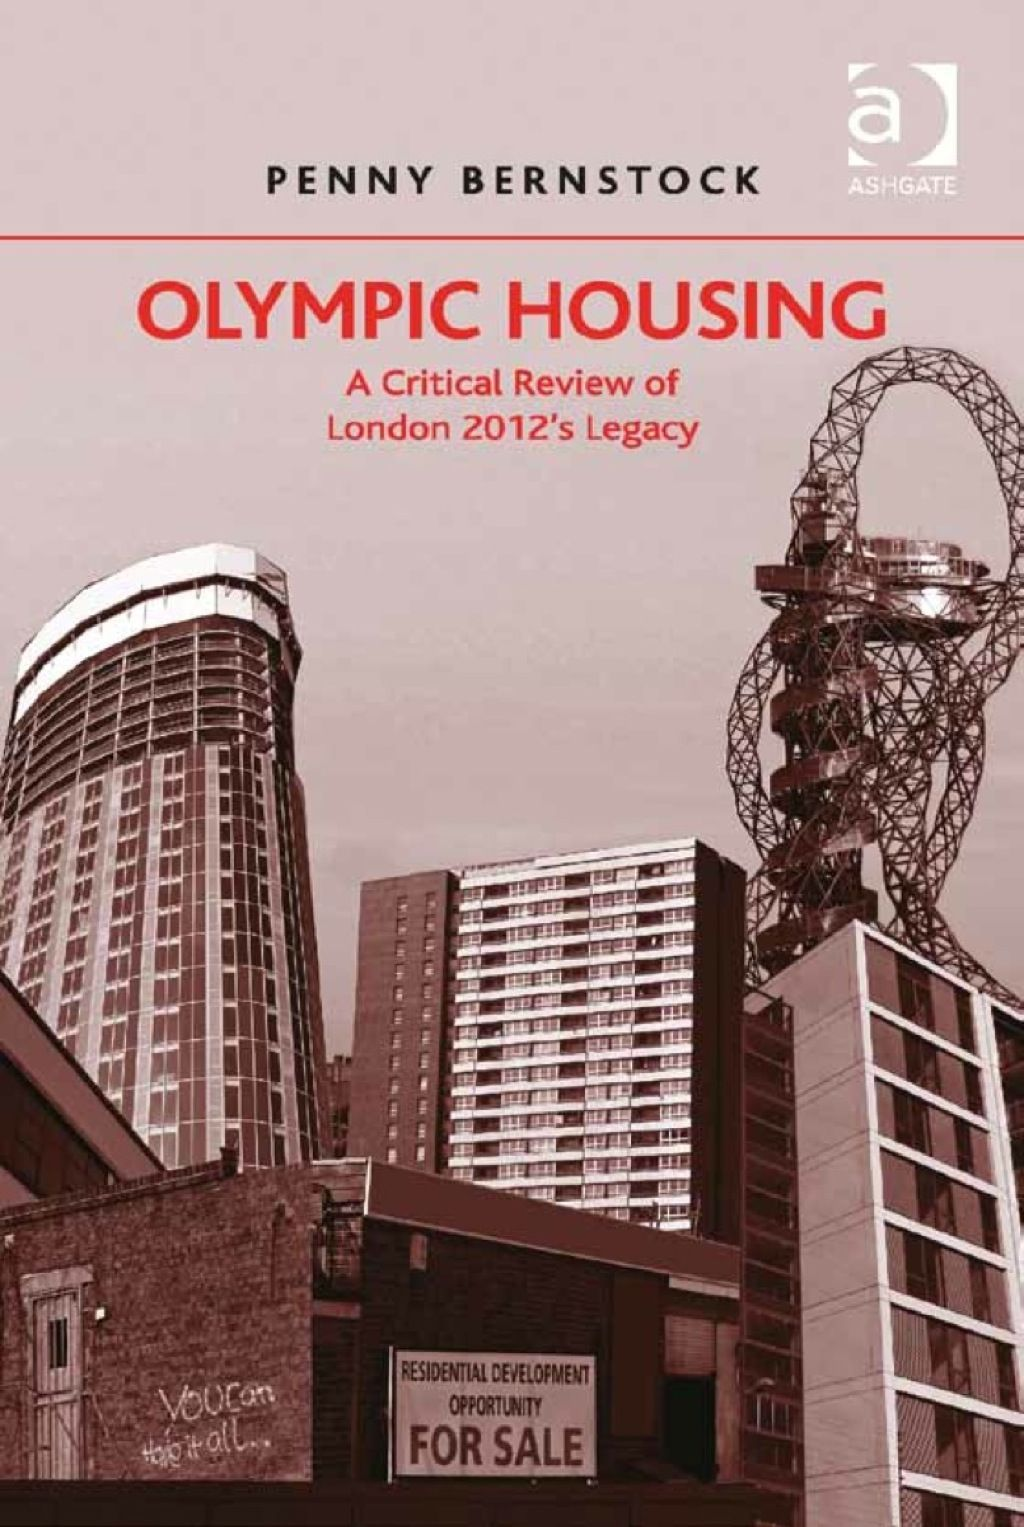 Olympic Housing A Critical Review of London 2012's Legacy